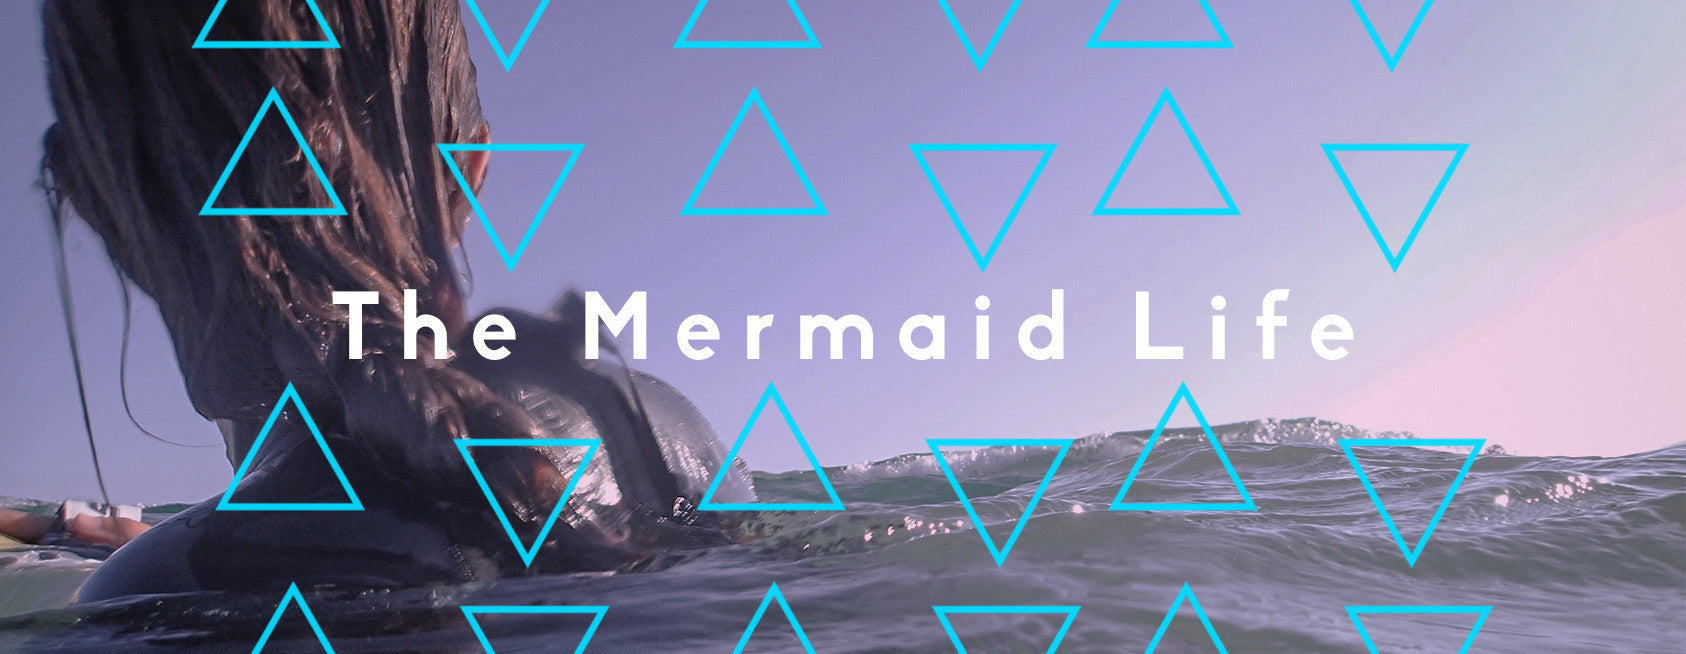 7 Signs You Might Be a Mermaid